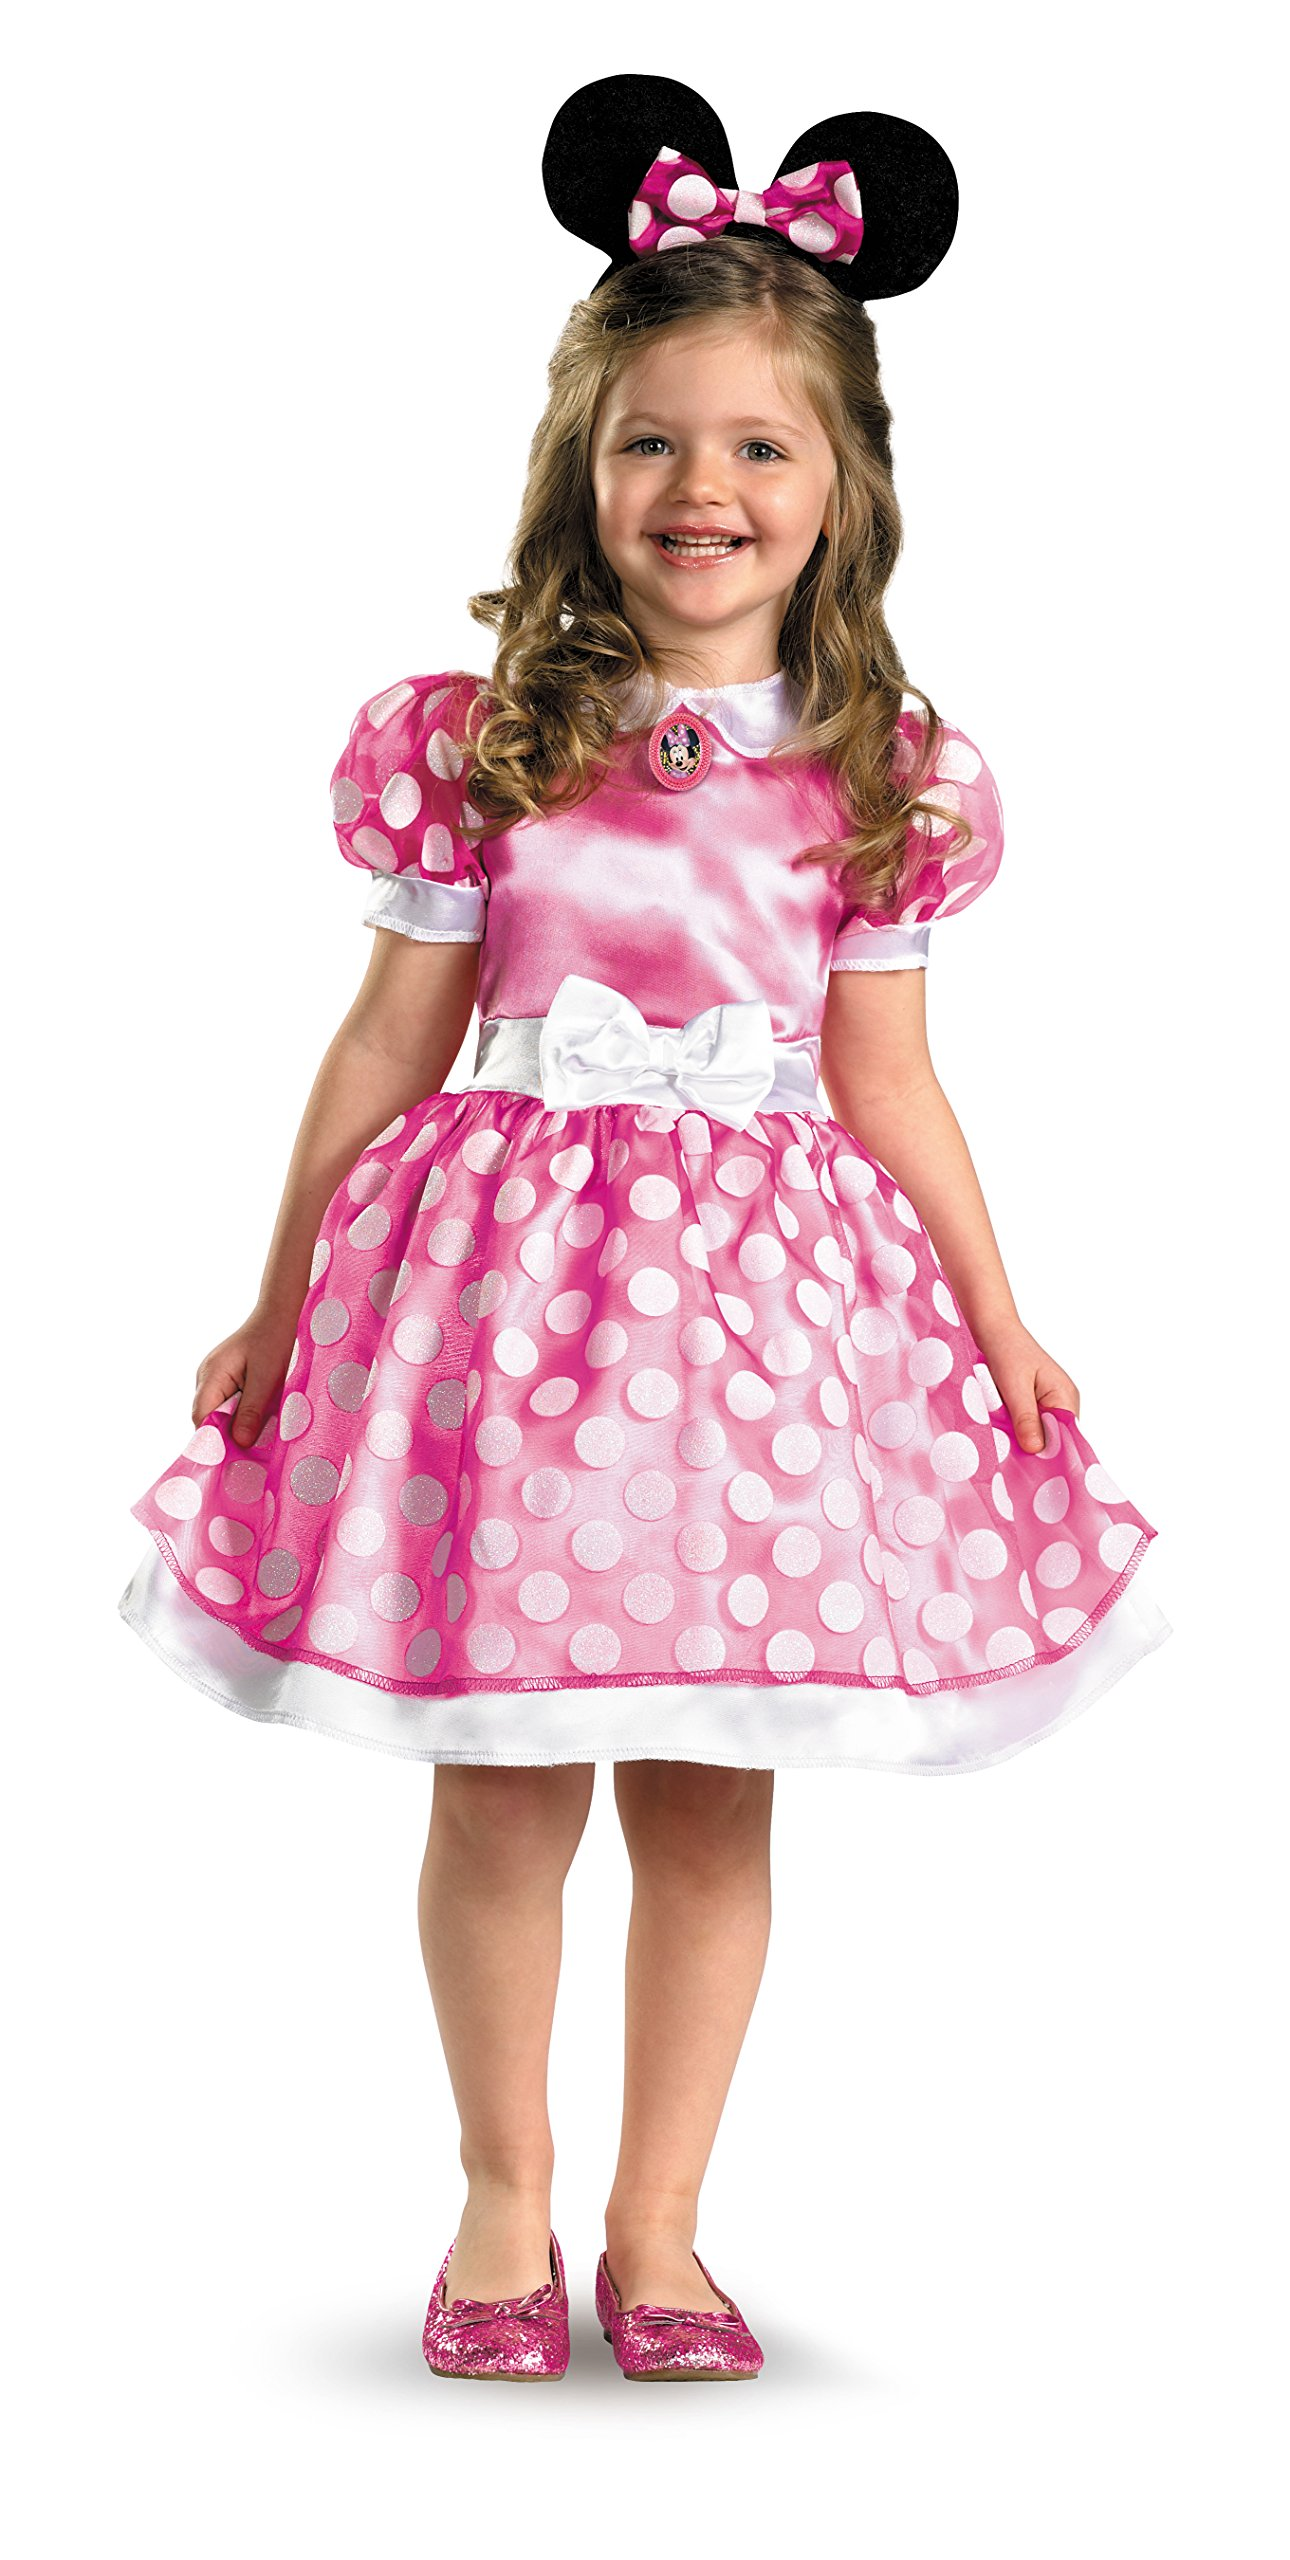 ea622832e Cutest little mouse in town - Your little one will be in this darling  Licensed Disney Clubhouse Minnie Dress and Headband. Every girls favorite  mouse, ...